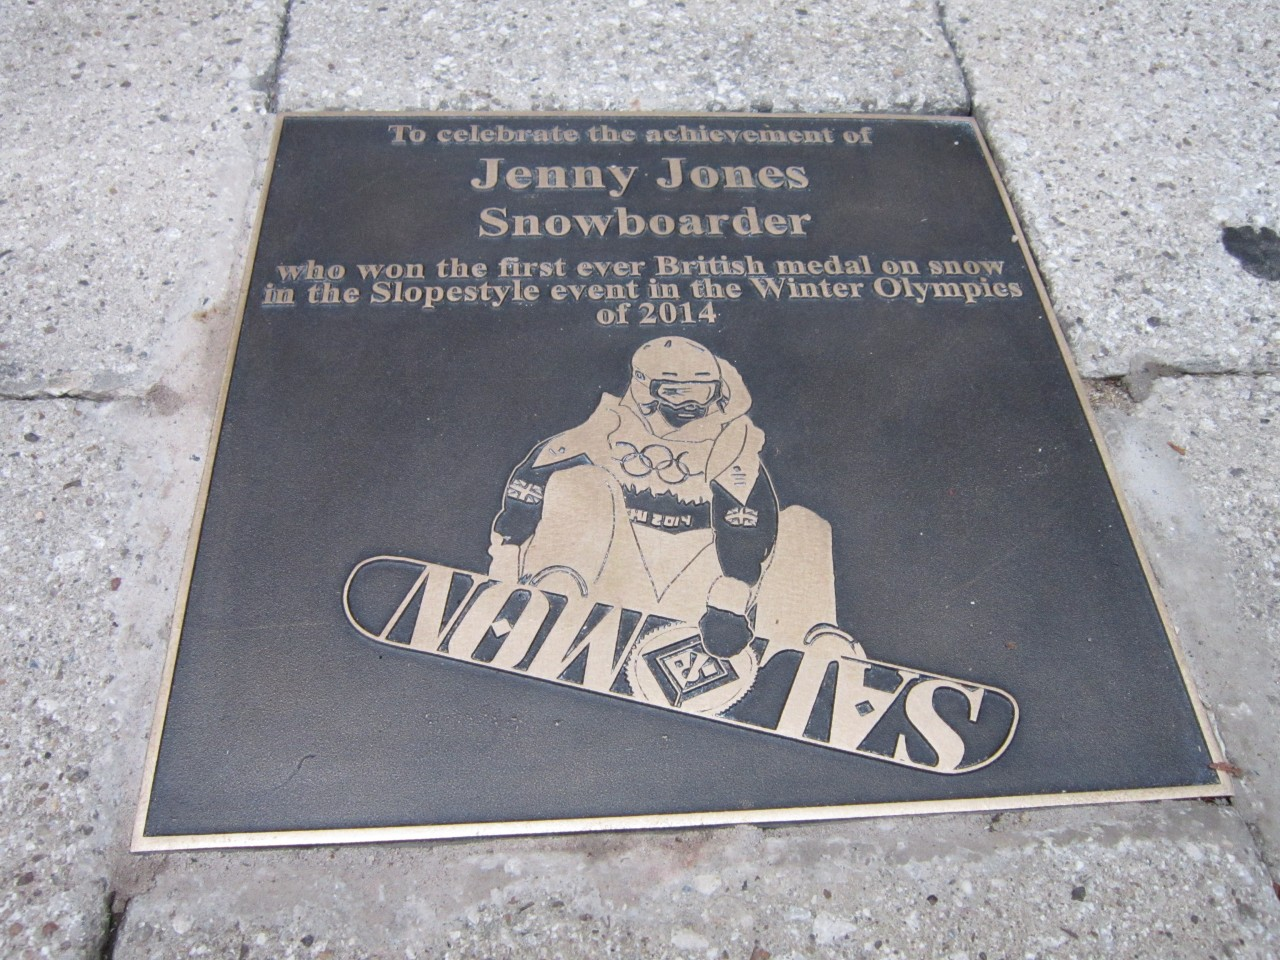 Unveiling of plaque by Jenny Jones, Olympic Snowboarder